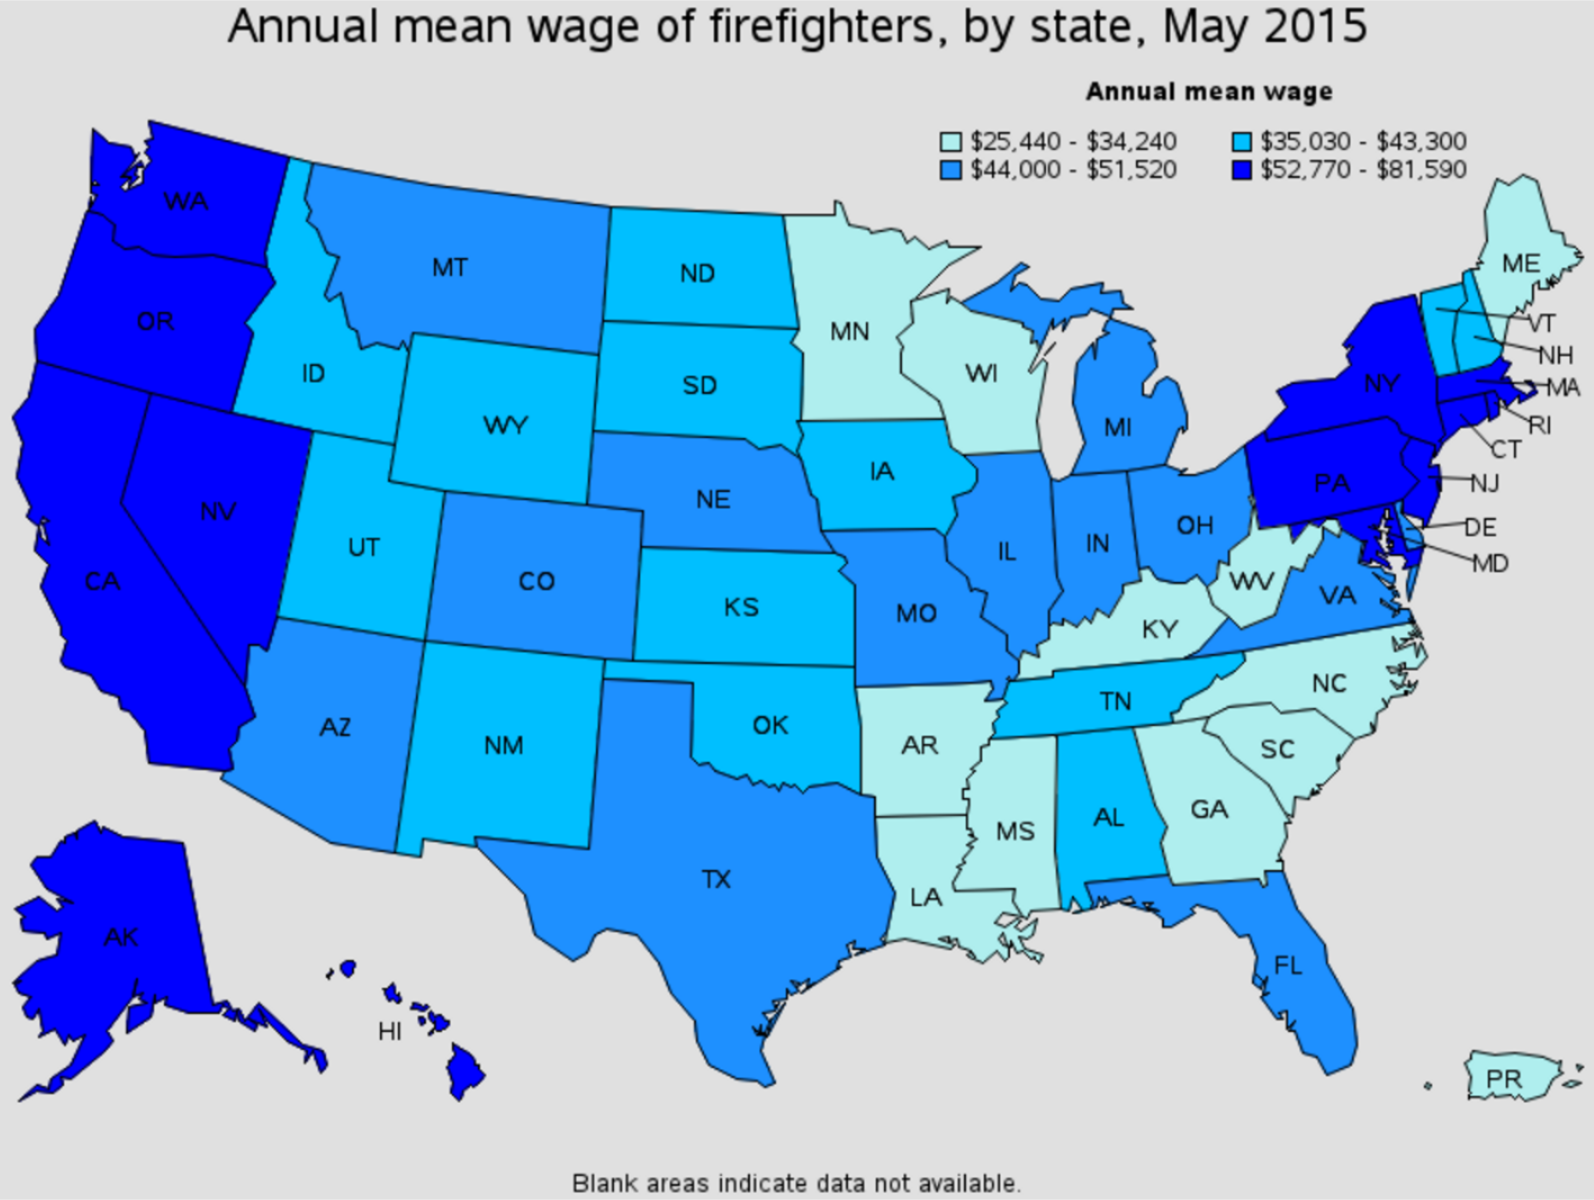 firefighter average salary by state Kansas City Kansas